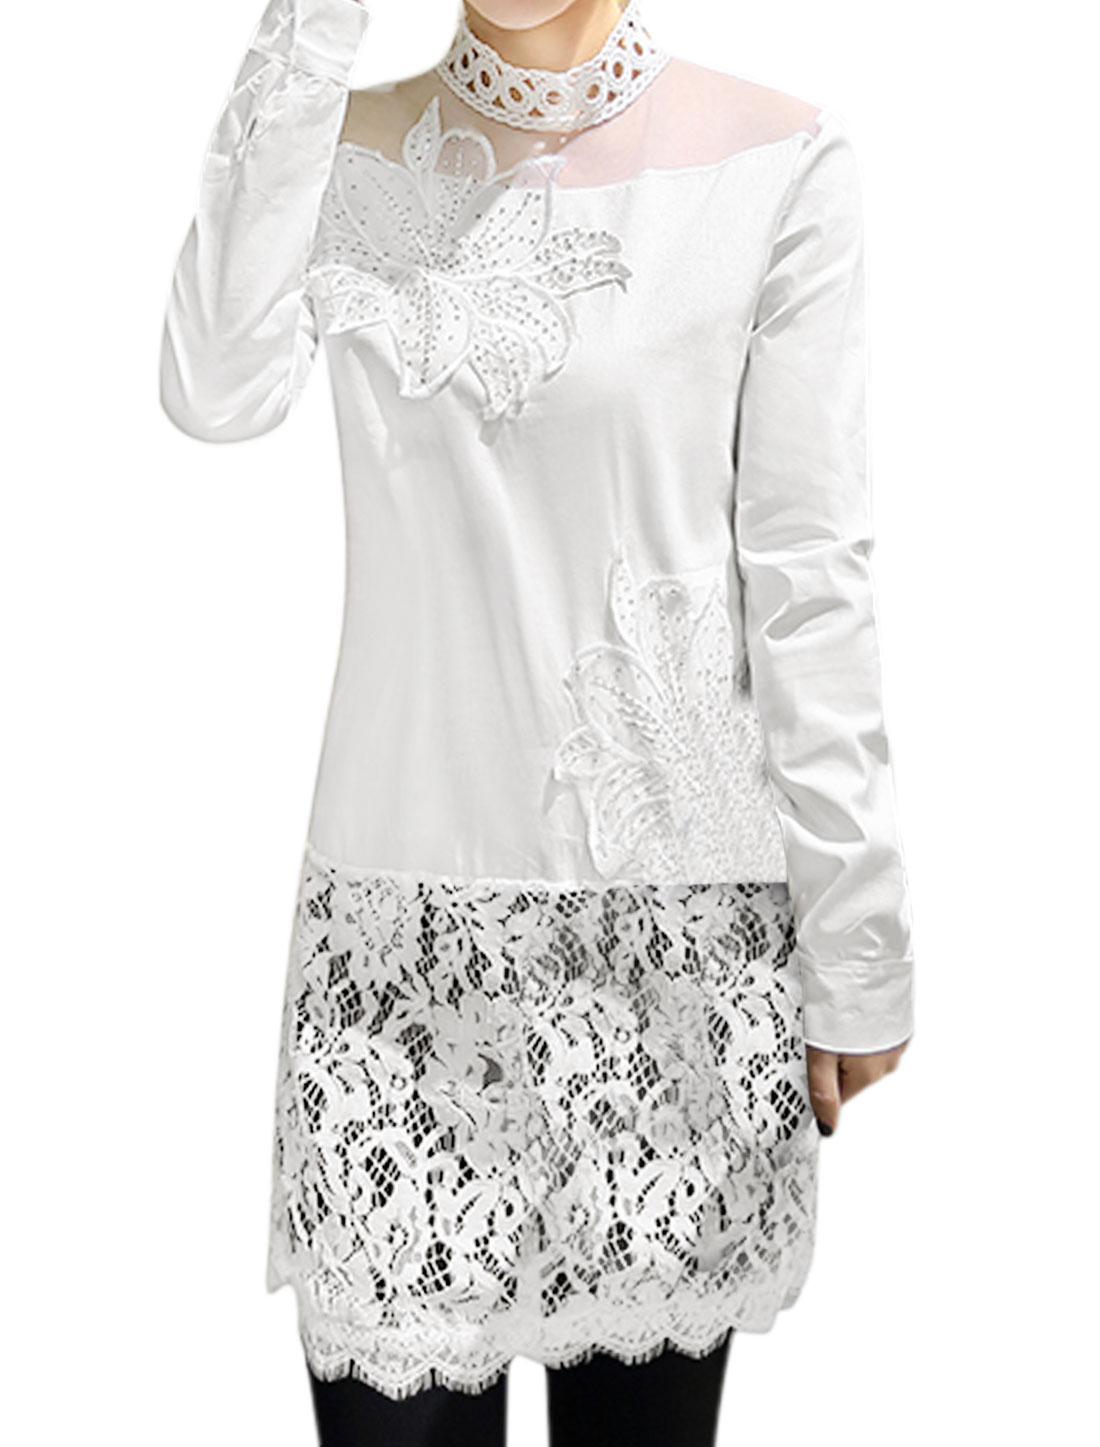 Women Floral Stitched Beads Decor Lace Panel Tunic Top White S